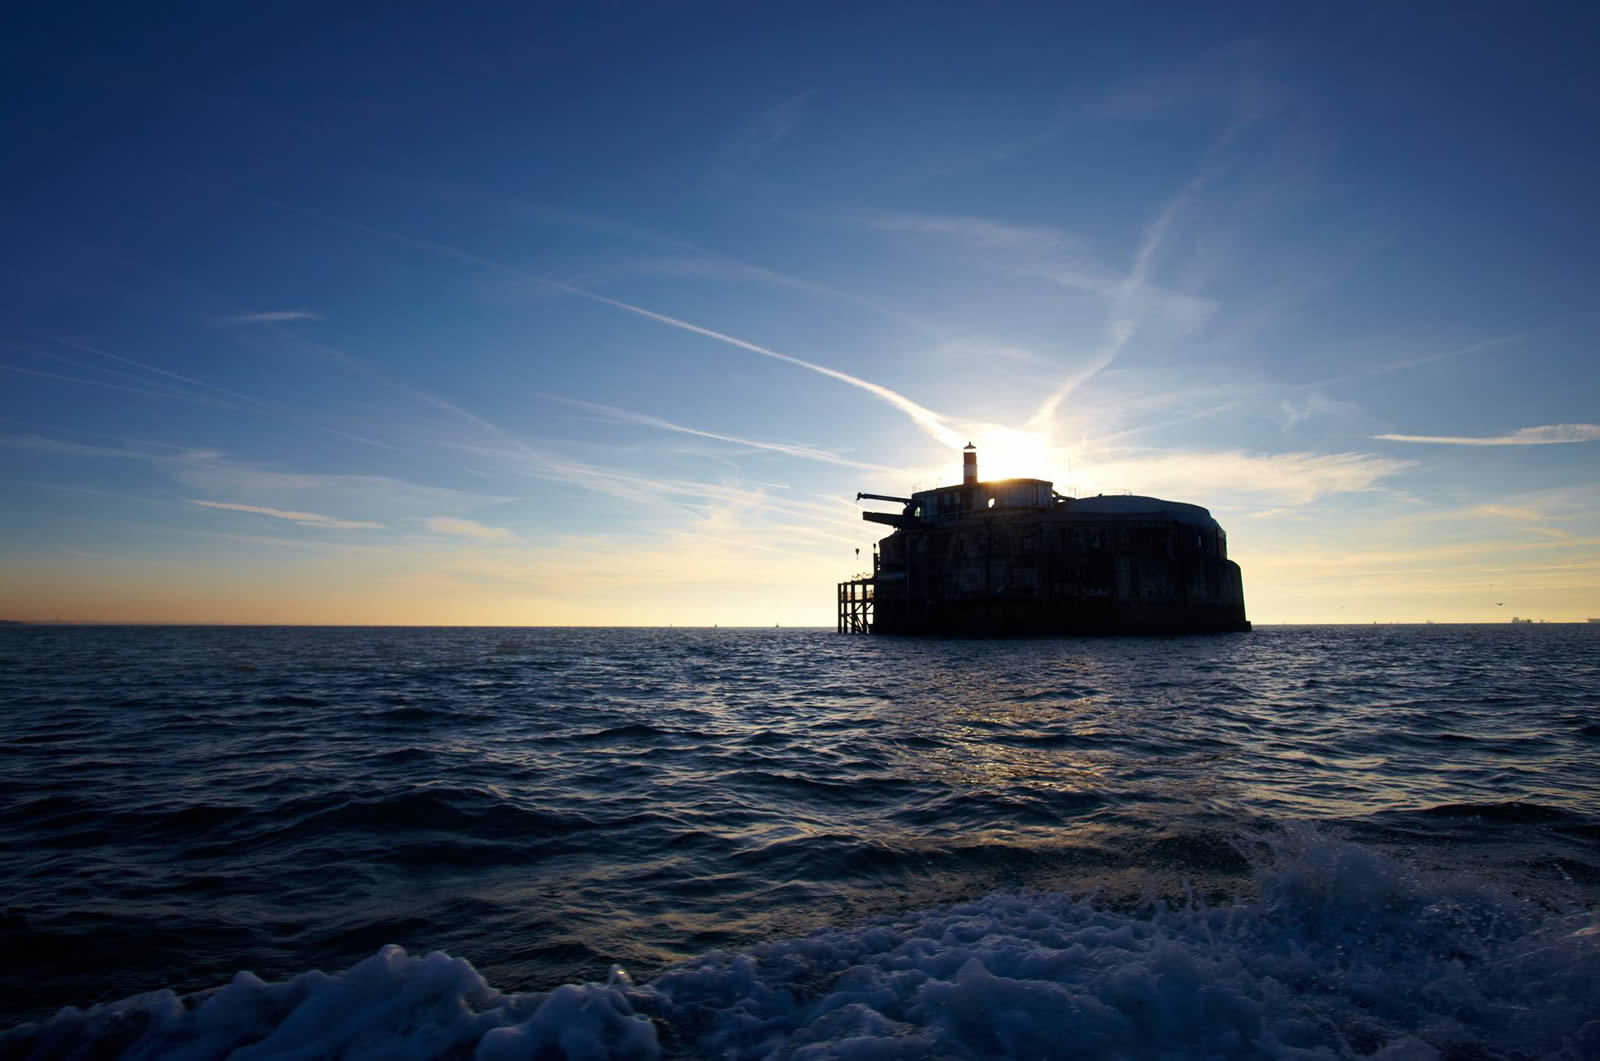 Spitbank Fort A Luxury Boutique Hotel In A Former Sea